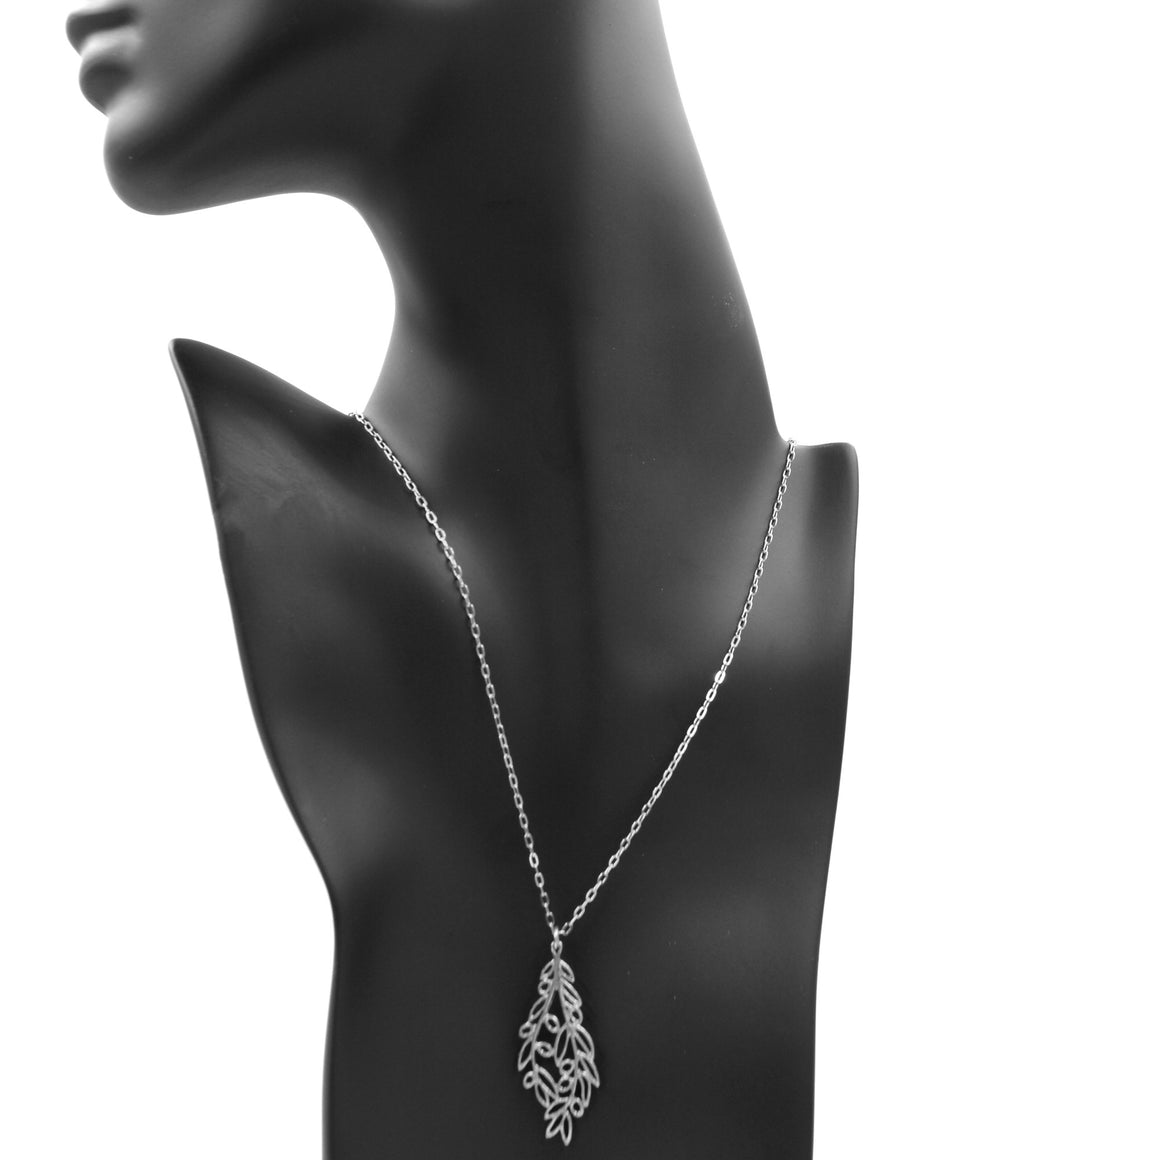 Olive Branch Pendant Necklace - Platinum Silver